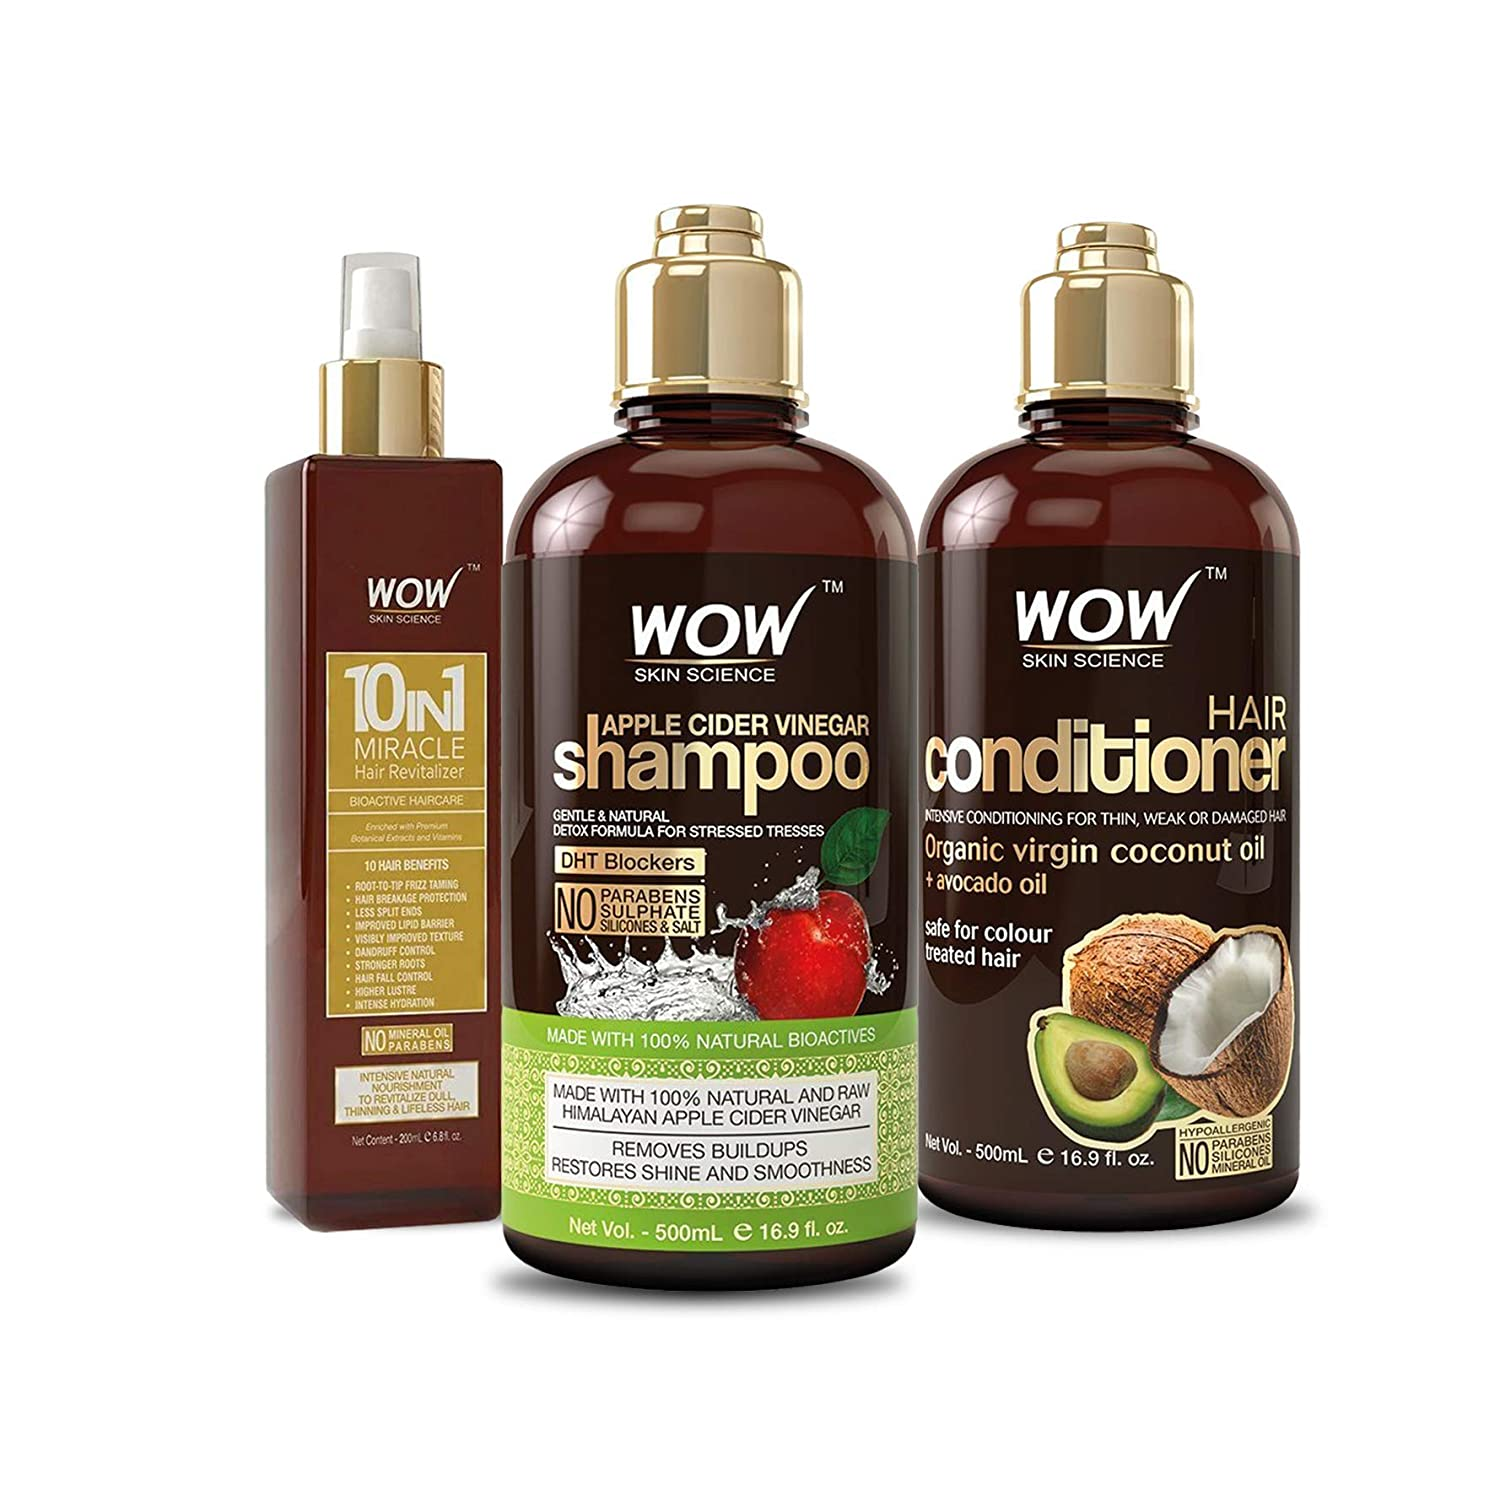 WOW Apple Cider Vinegar Shampoo & Coconut Avocado Conditioner 500ml and Leave In Conditioner Spray 200ml - Detox Clarifying Cleanser Hair Care Set For Oily Scalp - All Hair Types, Including Curly